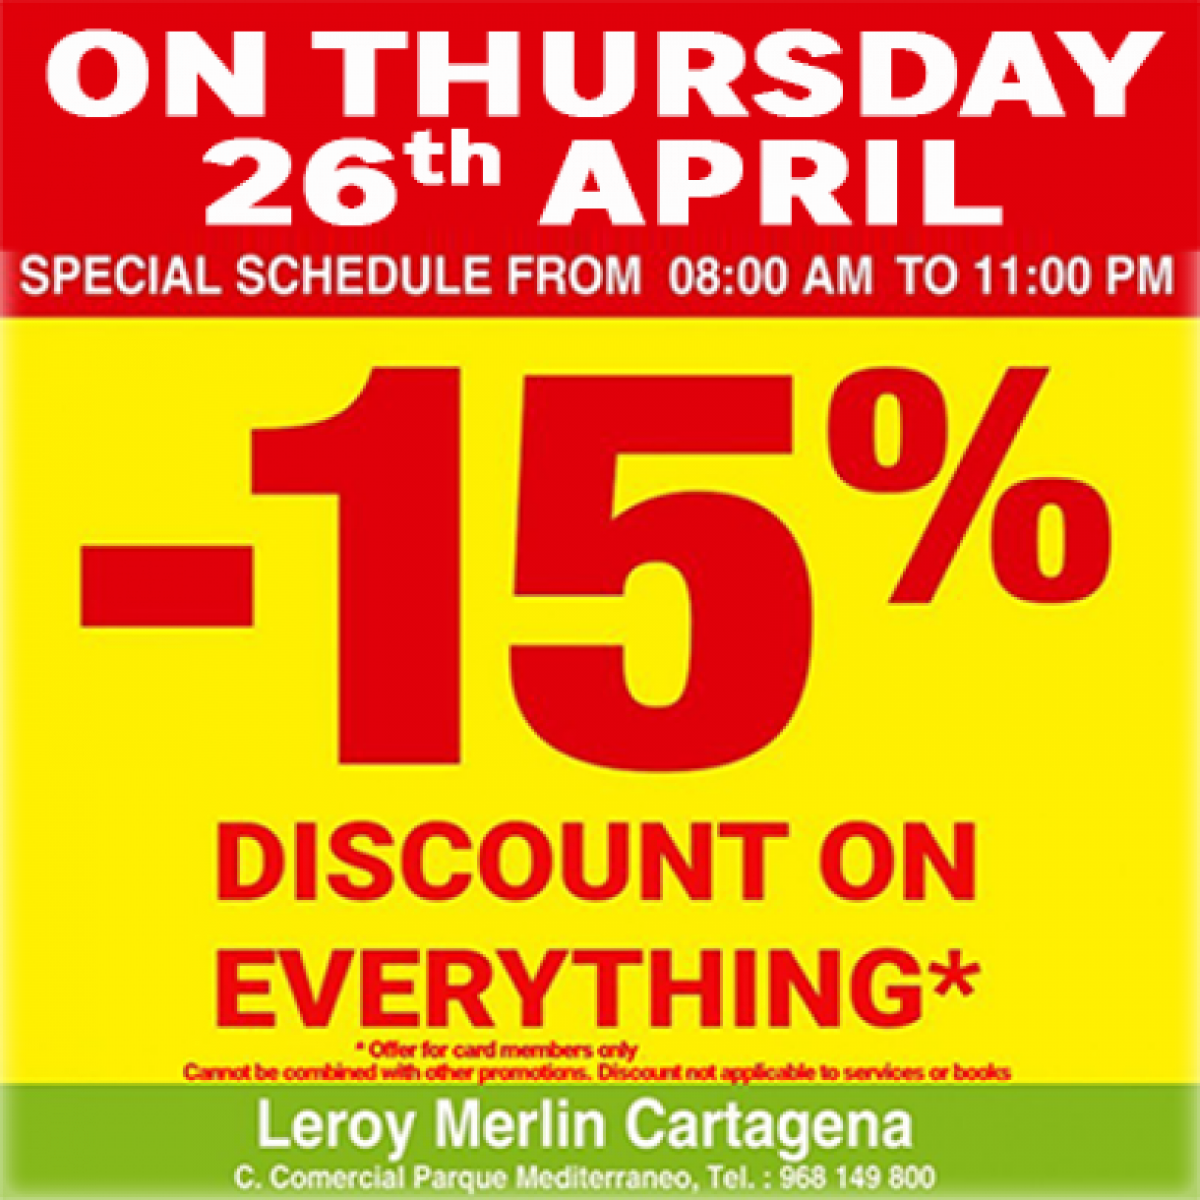 Get 15% off EVERYTHING at Leroy Merlin Cartagena on Thursday 26th April 2018